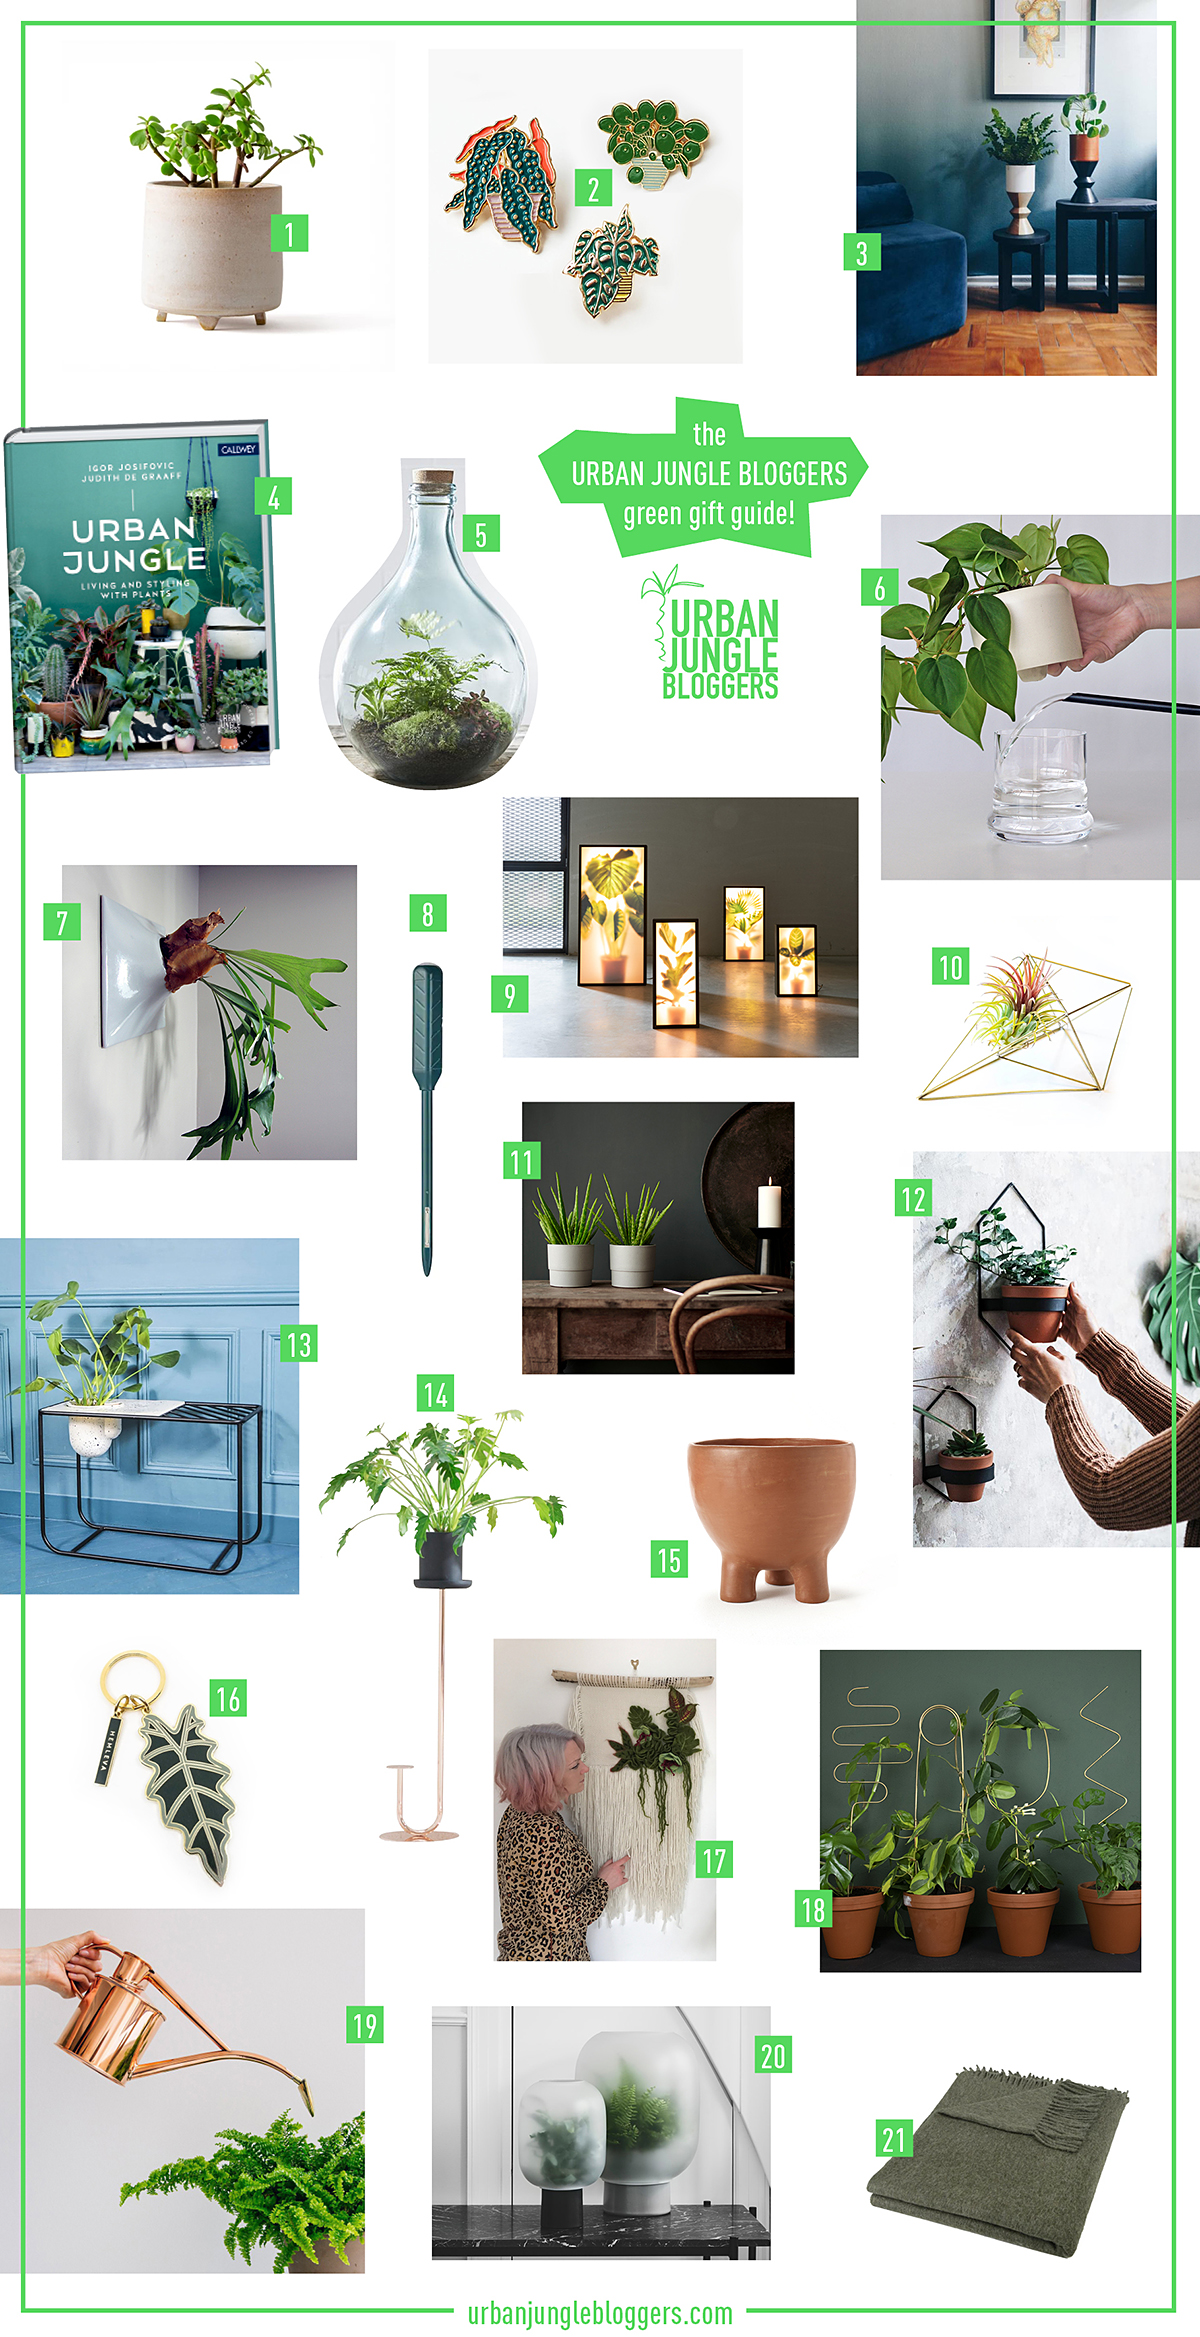 Urban Jungle Bloggers - Green Gift Guide 2019 #urbanjunglebloggers